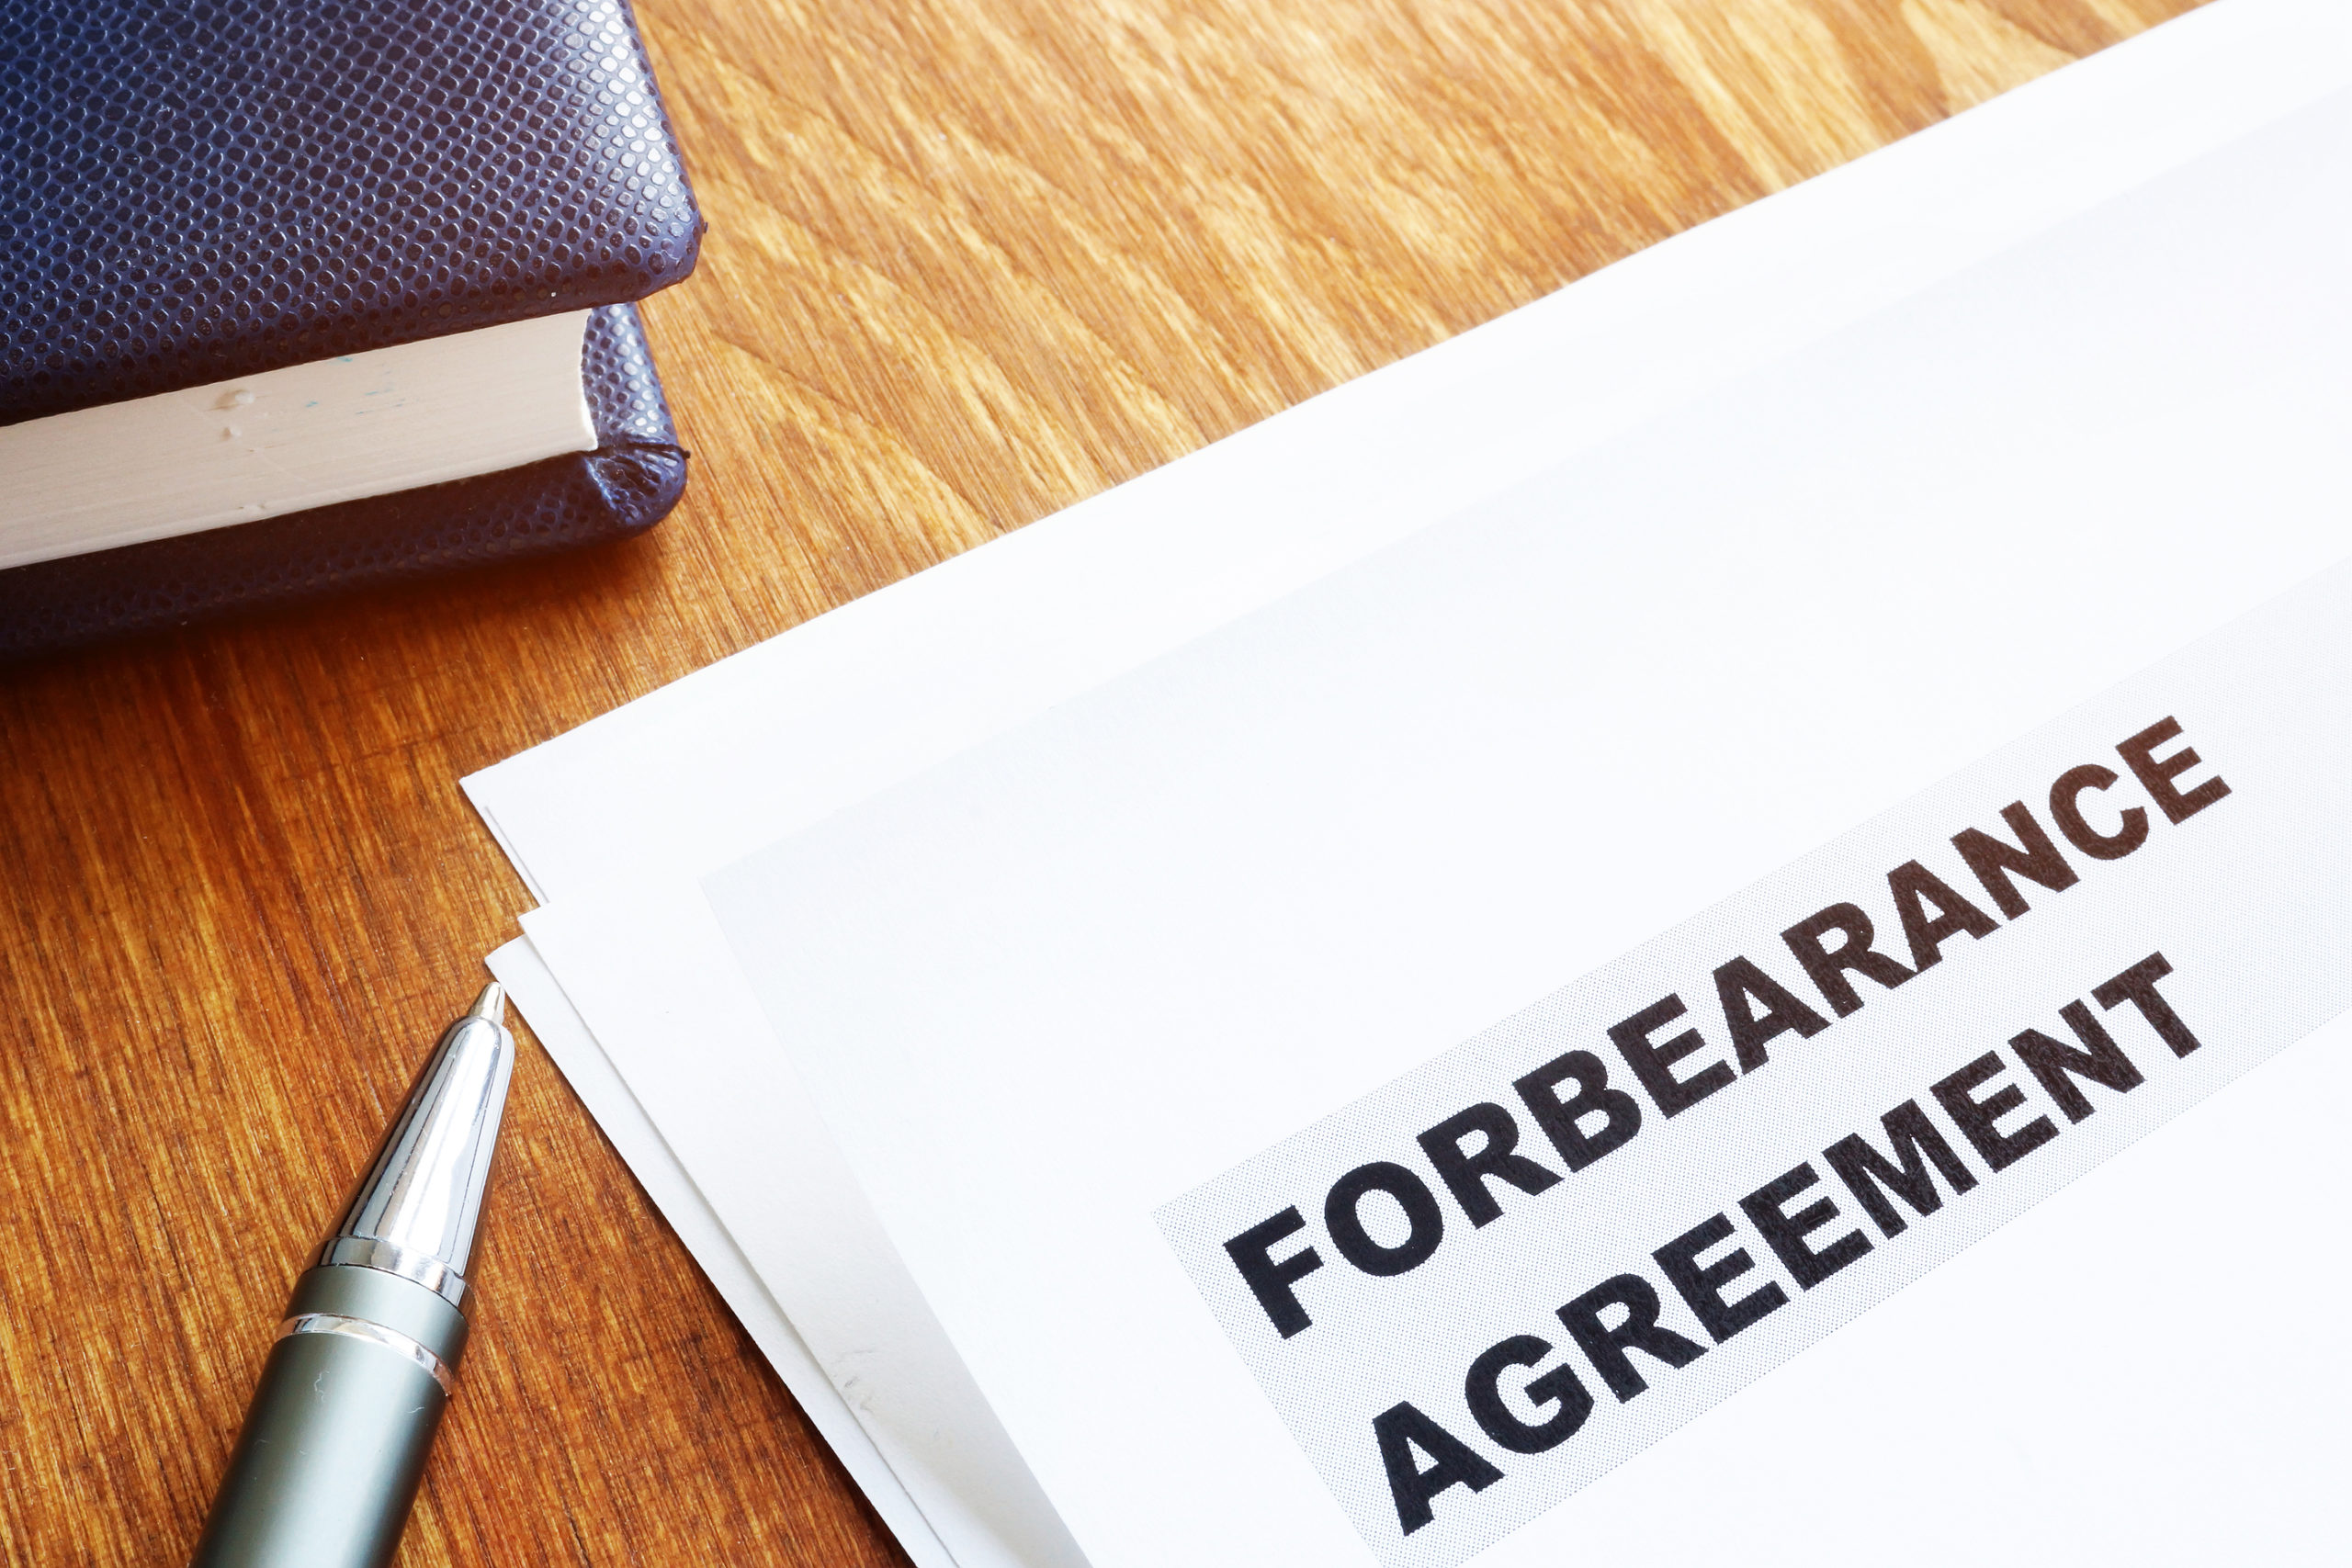 Forbearance-Agreement-Papers-With-Notepad